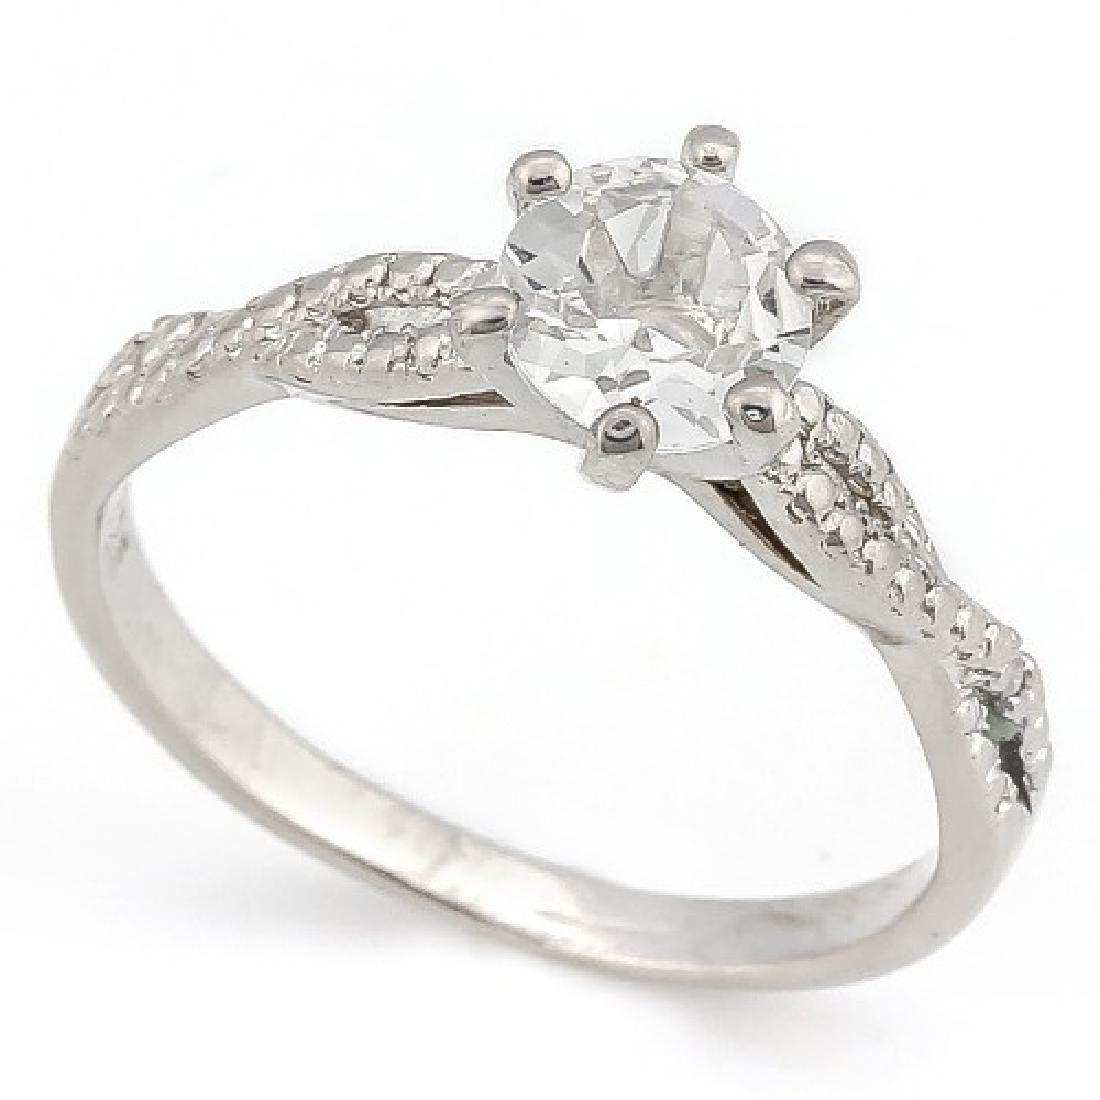 4/5 CARAT WHITE TOPAZ & DIAMOND 925 STERLING SILVER RIN